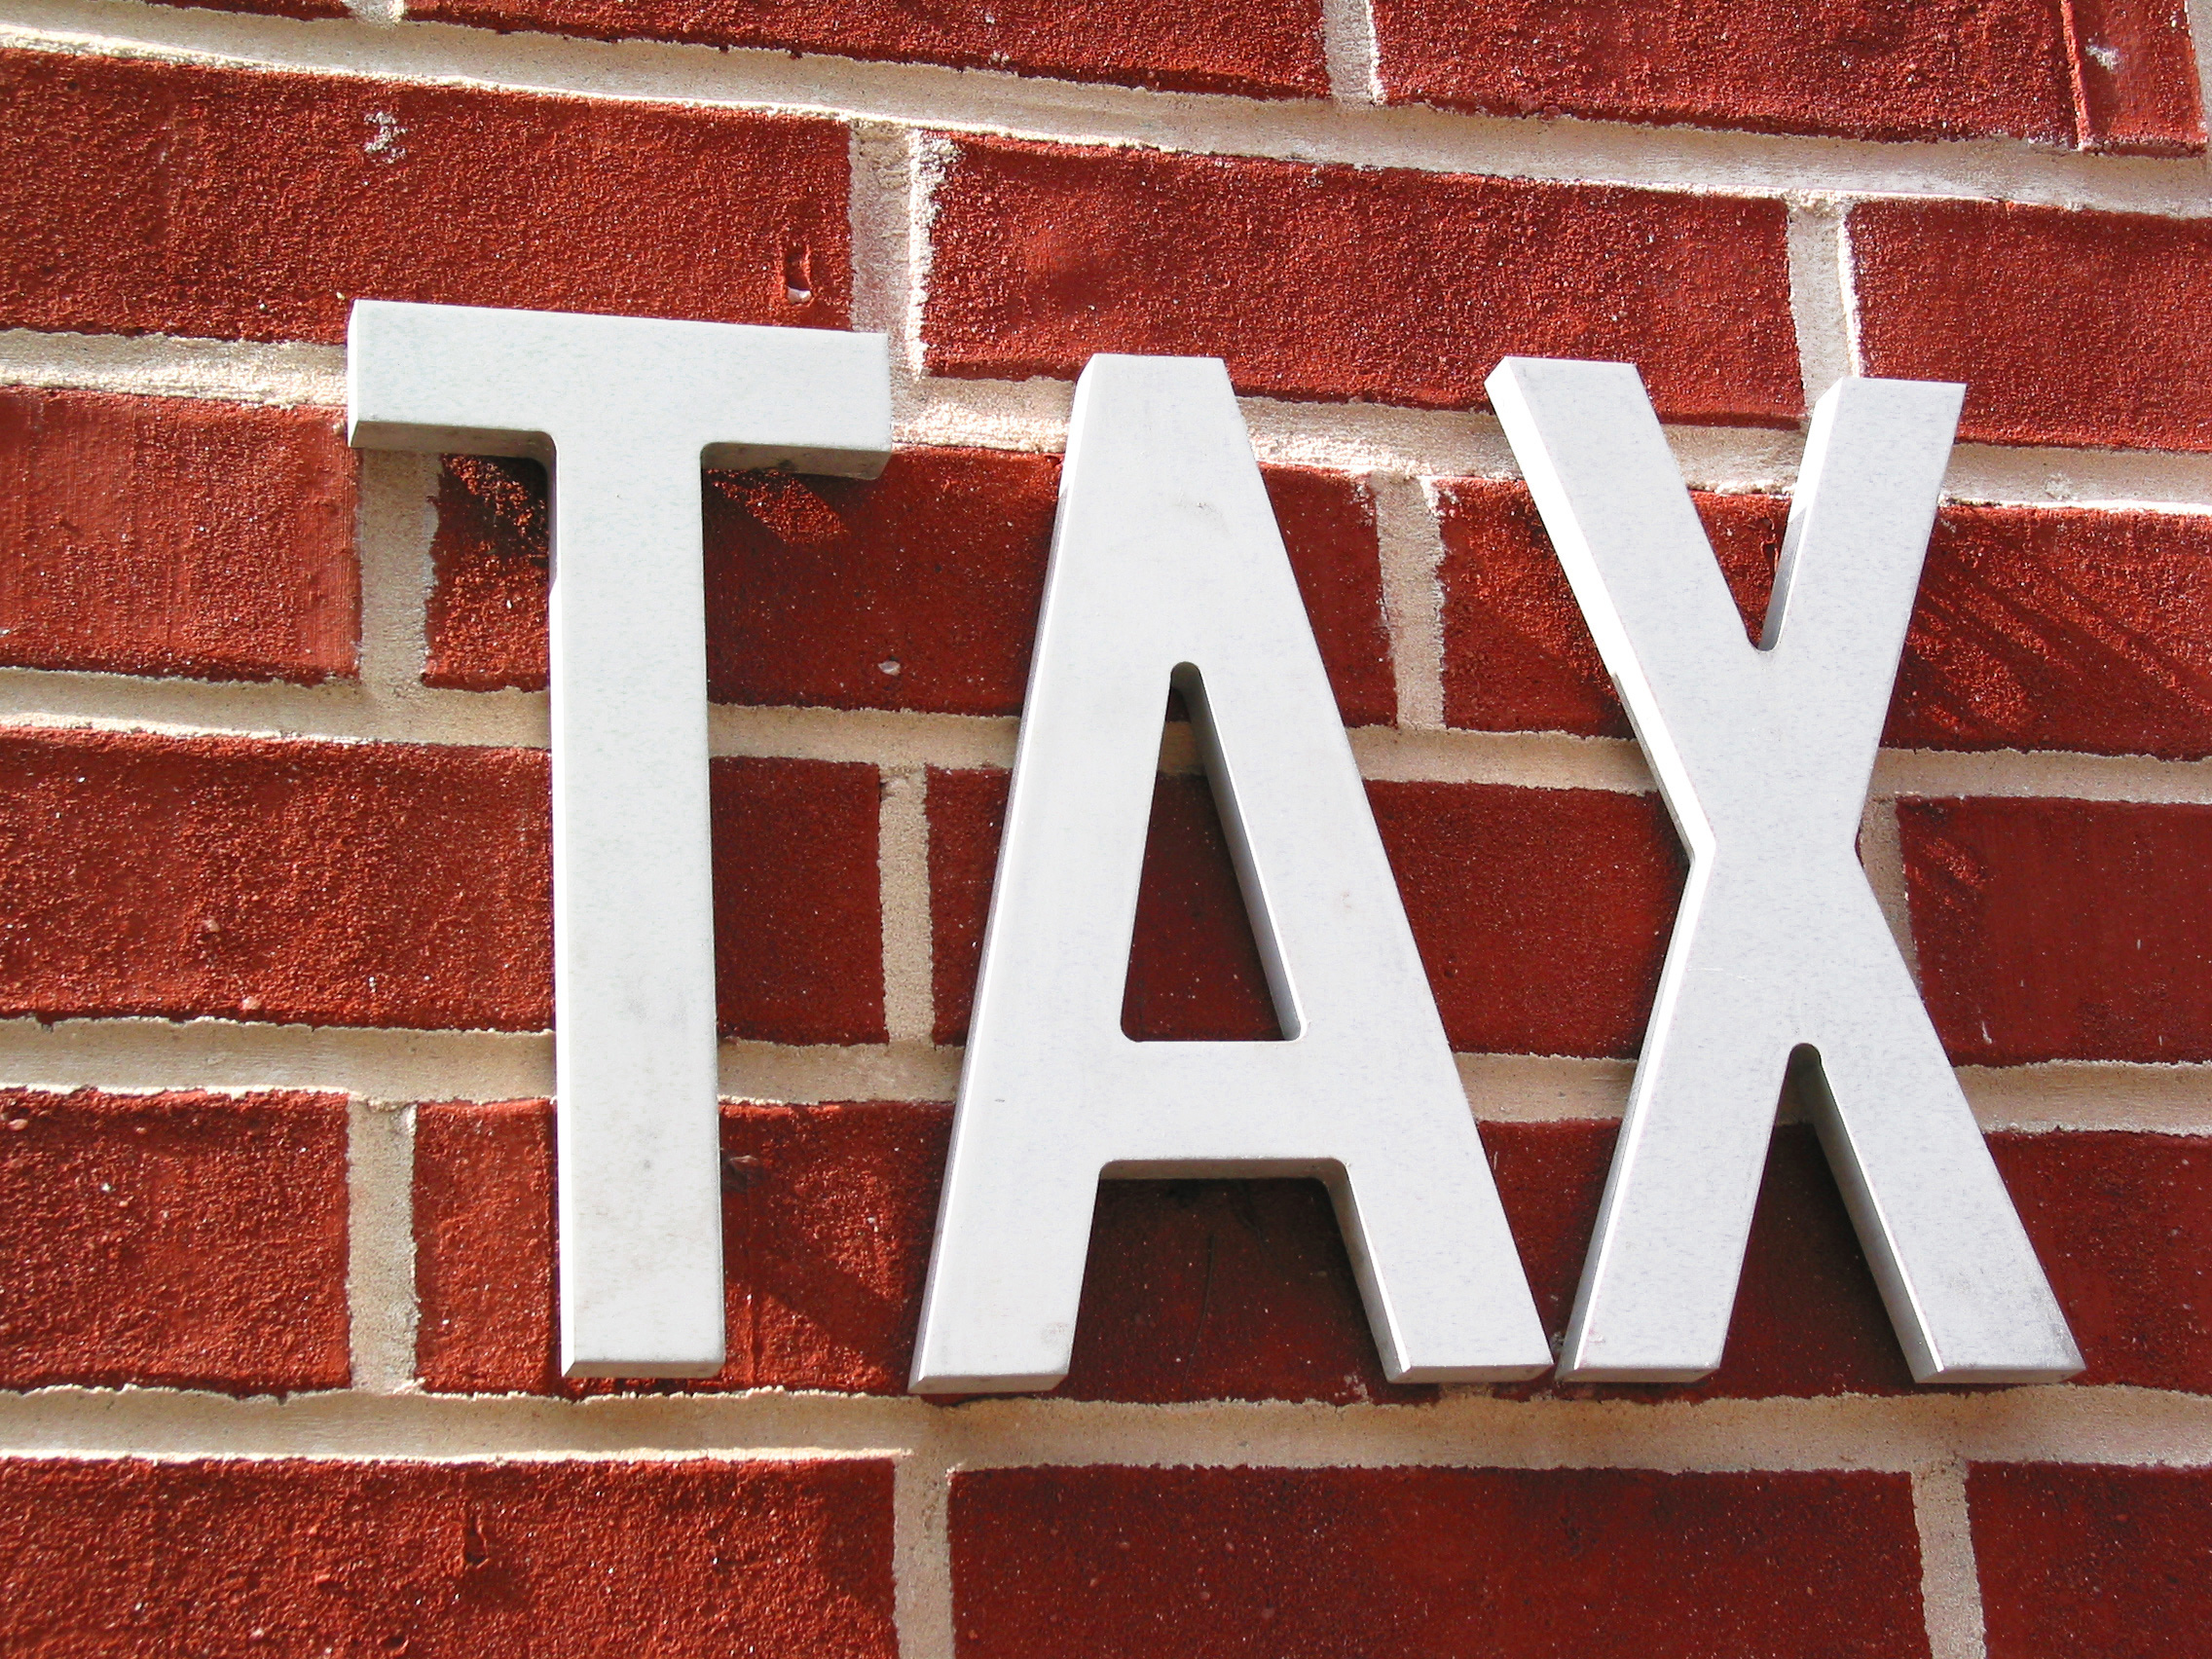 Failure to Pay Taxes Results in Litigation Headache for New Orleans